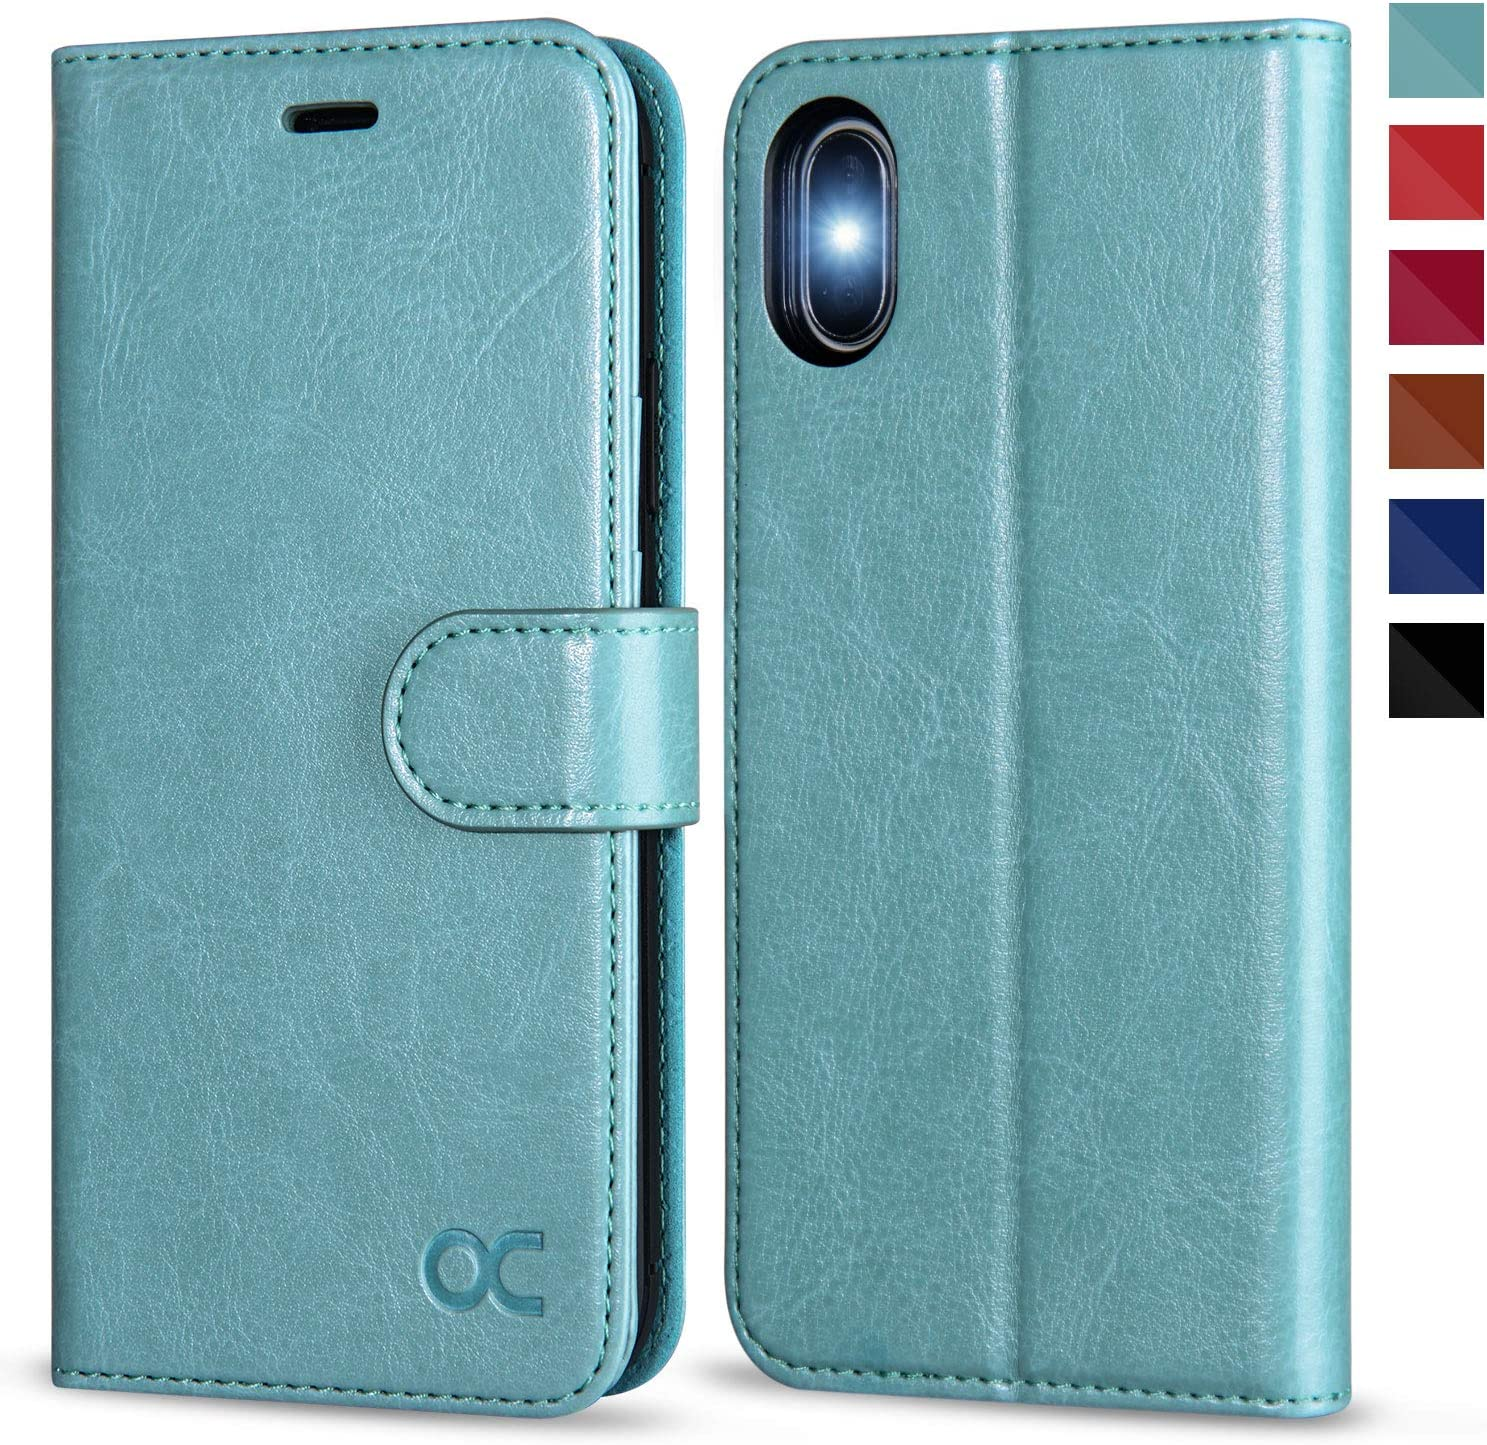 OCASE iPhone X Wallet Case, iPhone 10 Case [ Wireless Charging ] [ Card Slot ] [ Kickstand ] Leather Flip Wallet Phone Cover Compatible for iPhone X/iPhone 10 - Mint Green